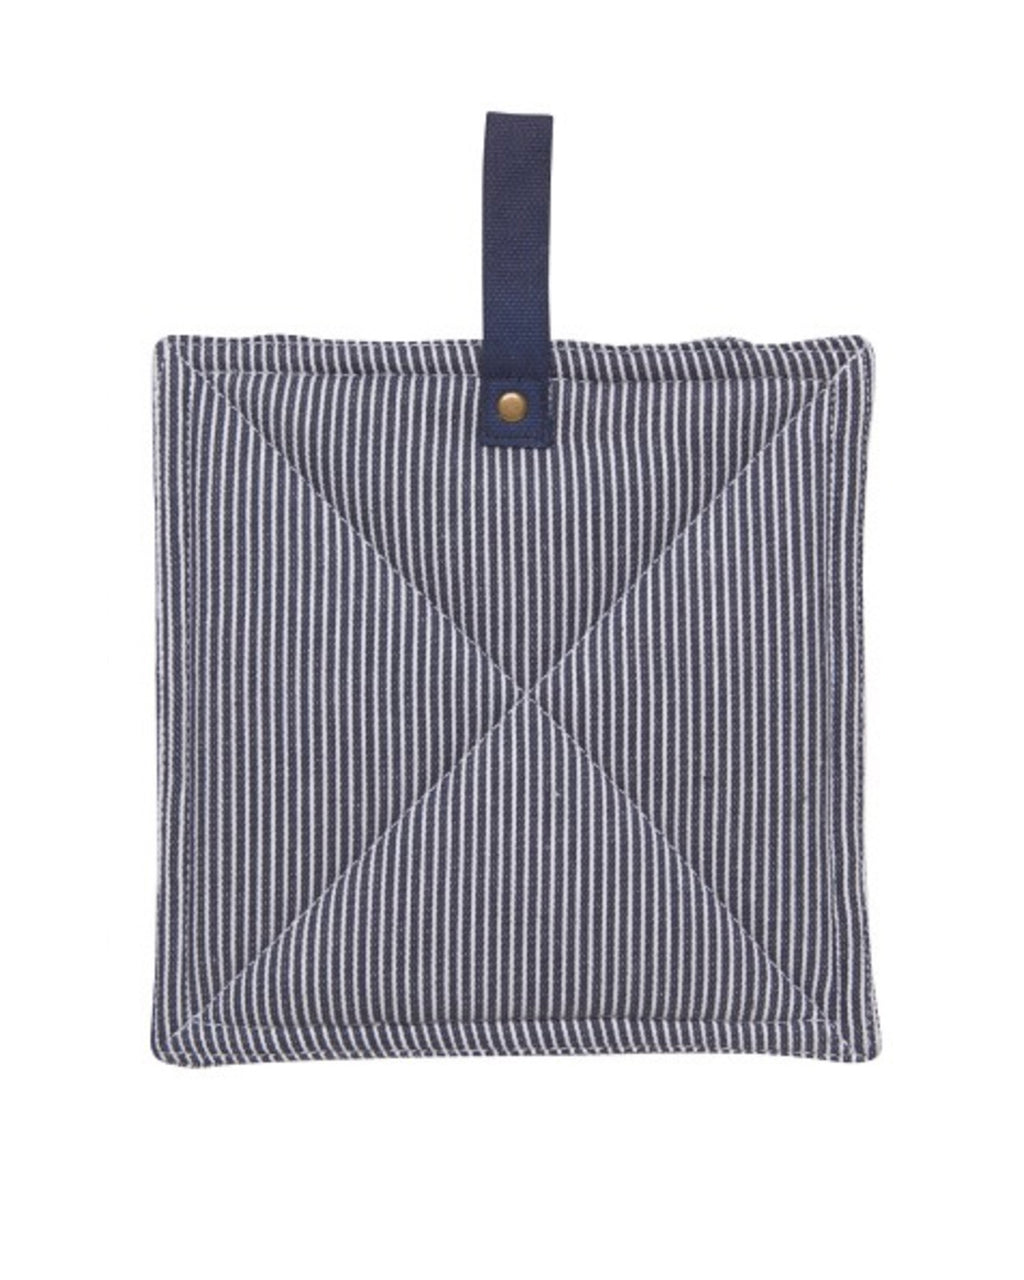 Railroad Stripe Potholder